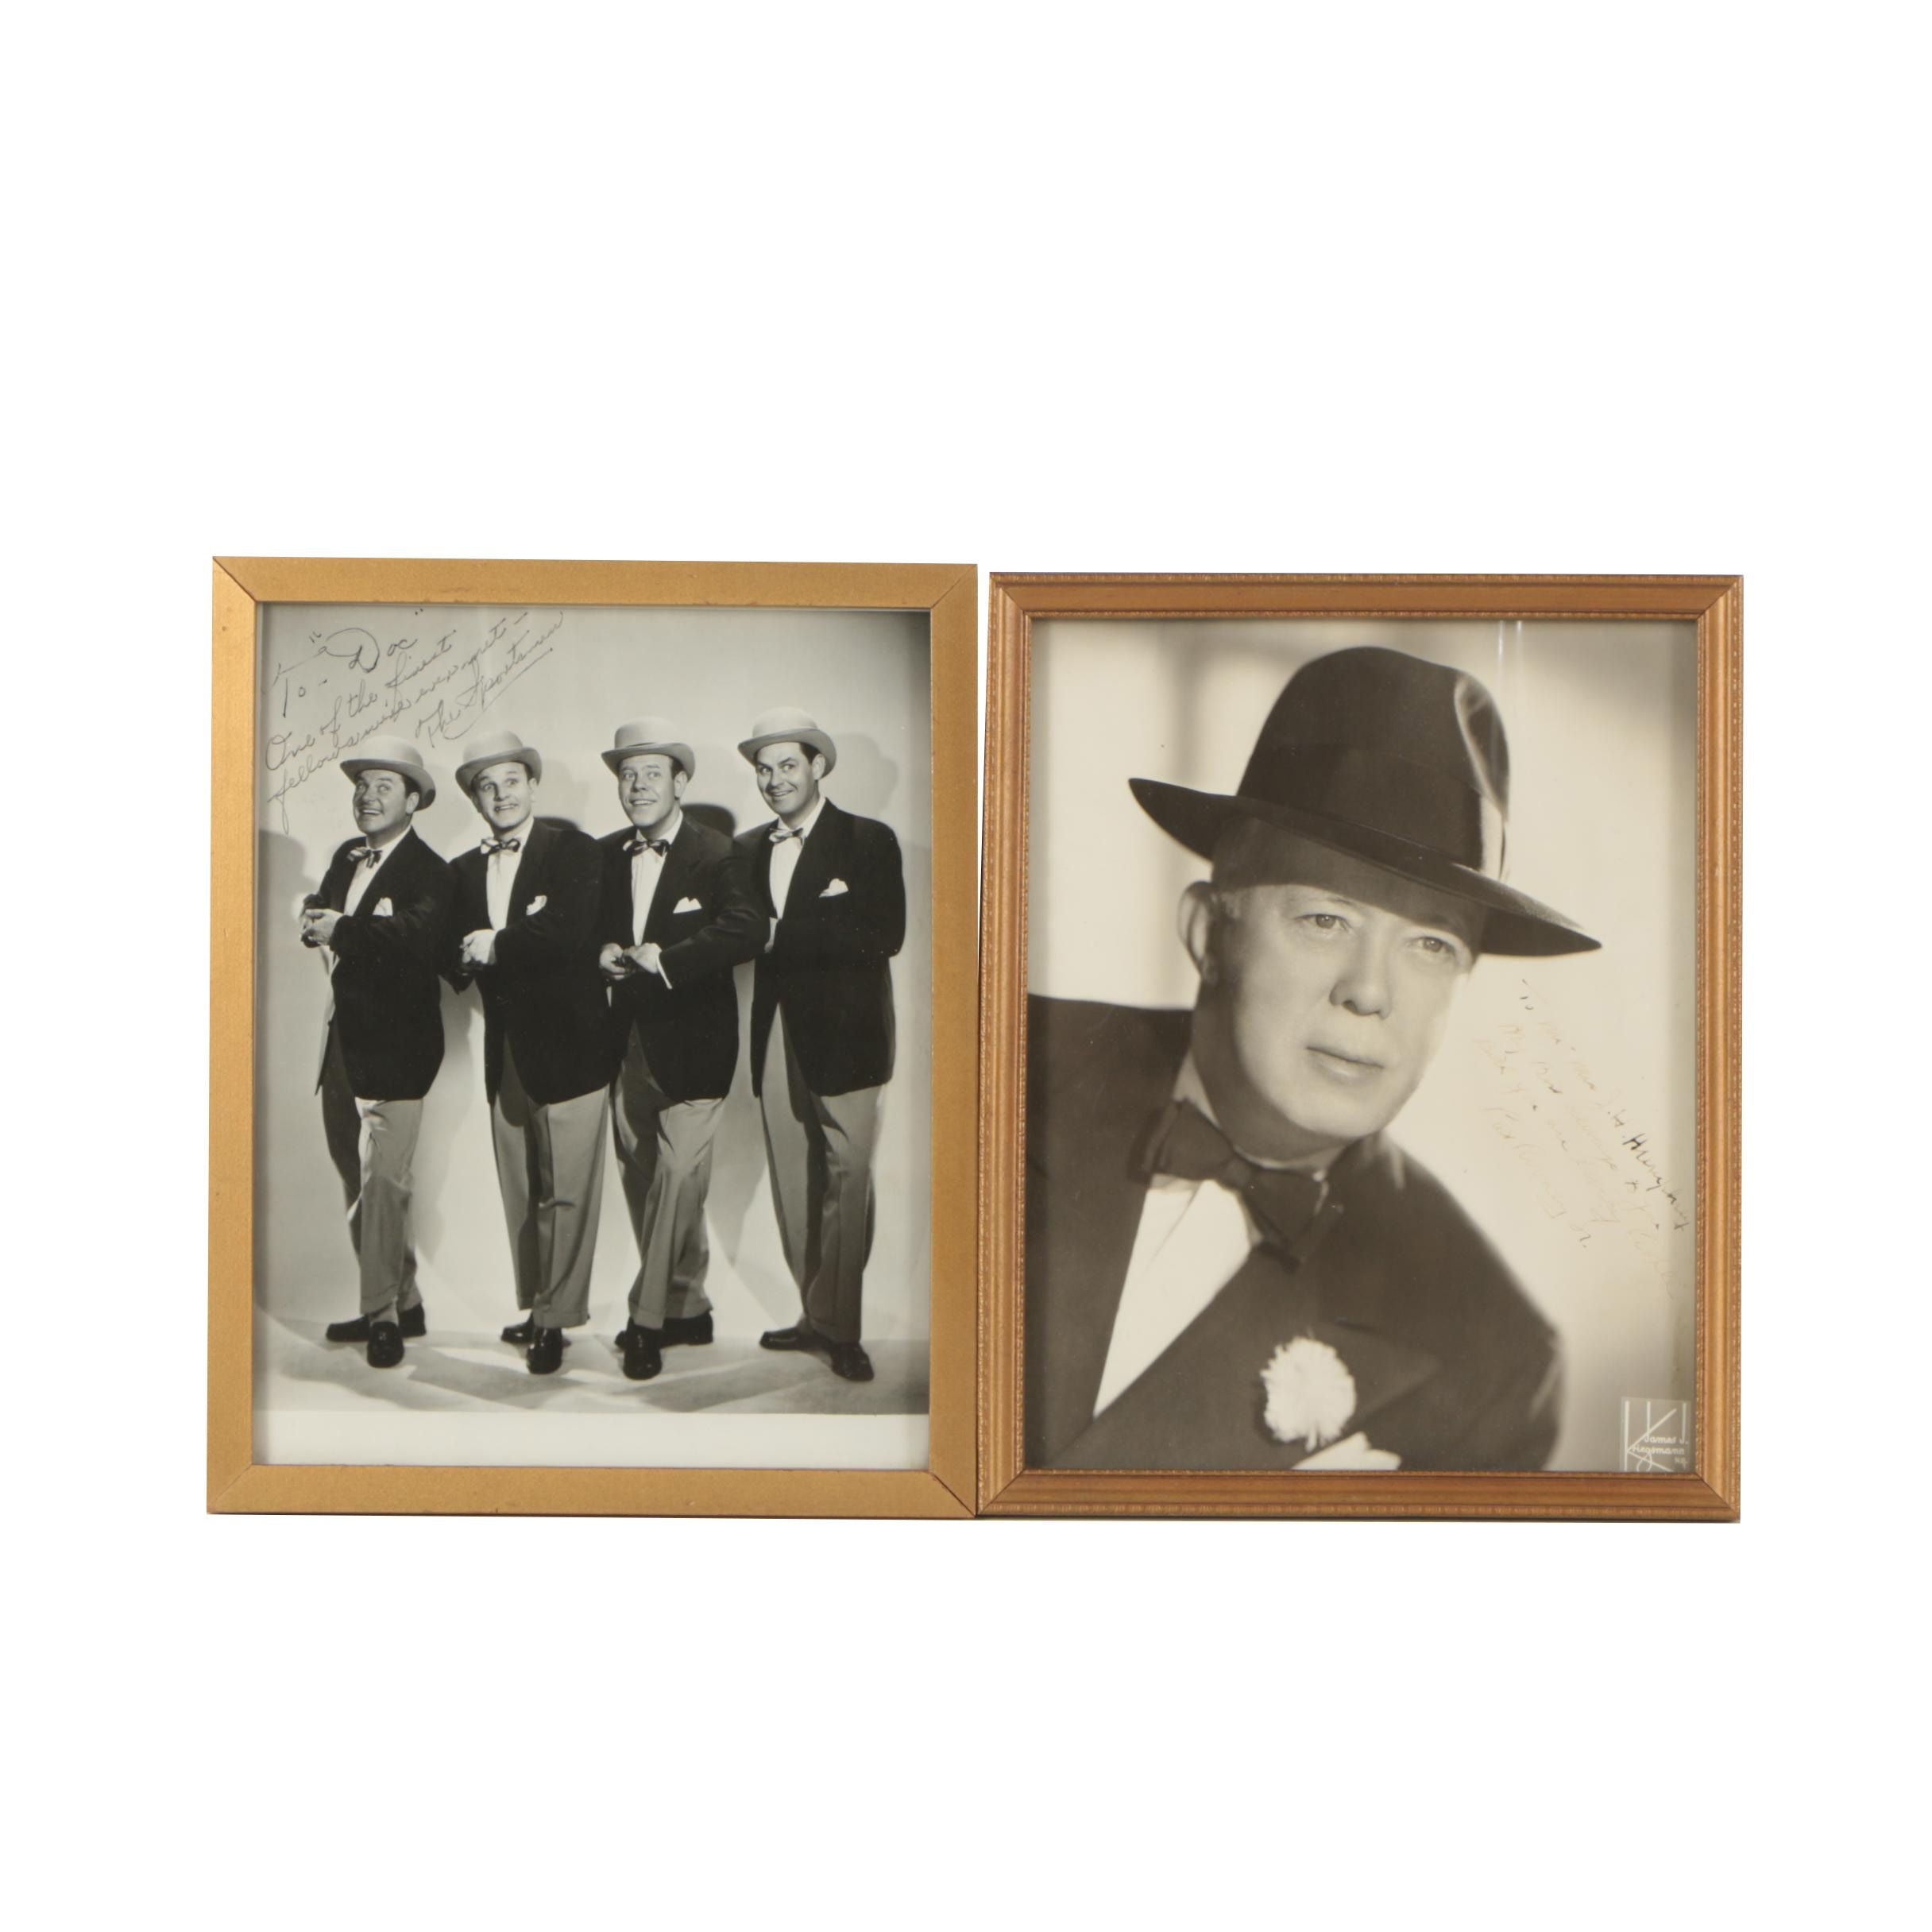 Black and White Signed Photographs of Pat Rooney Sr. and The Sportsmen